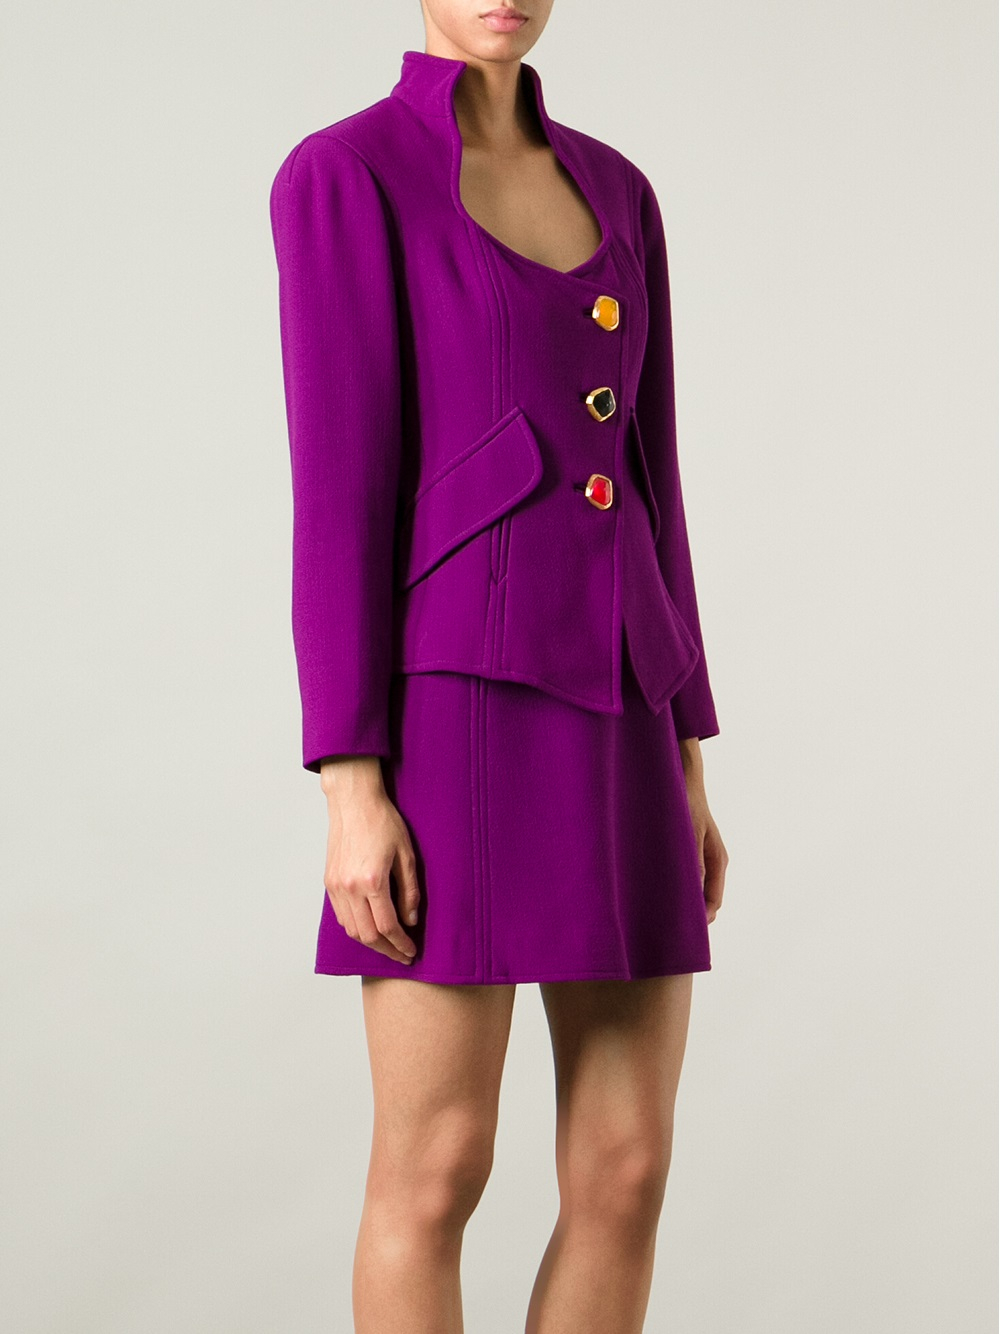 Lyst - Christian Lacroix Skirt And Jacket Suit in Purple